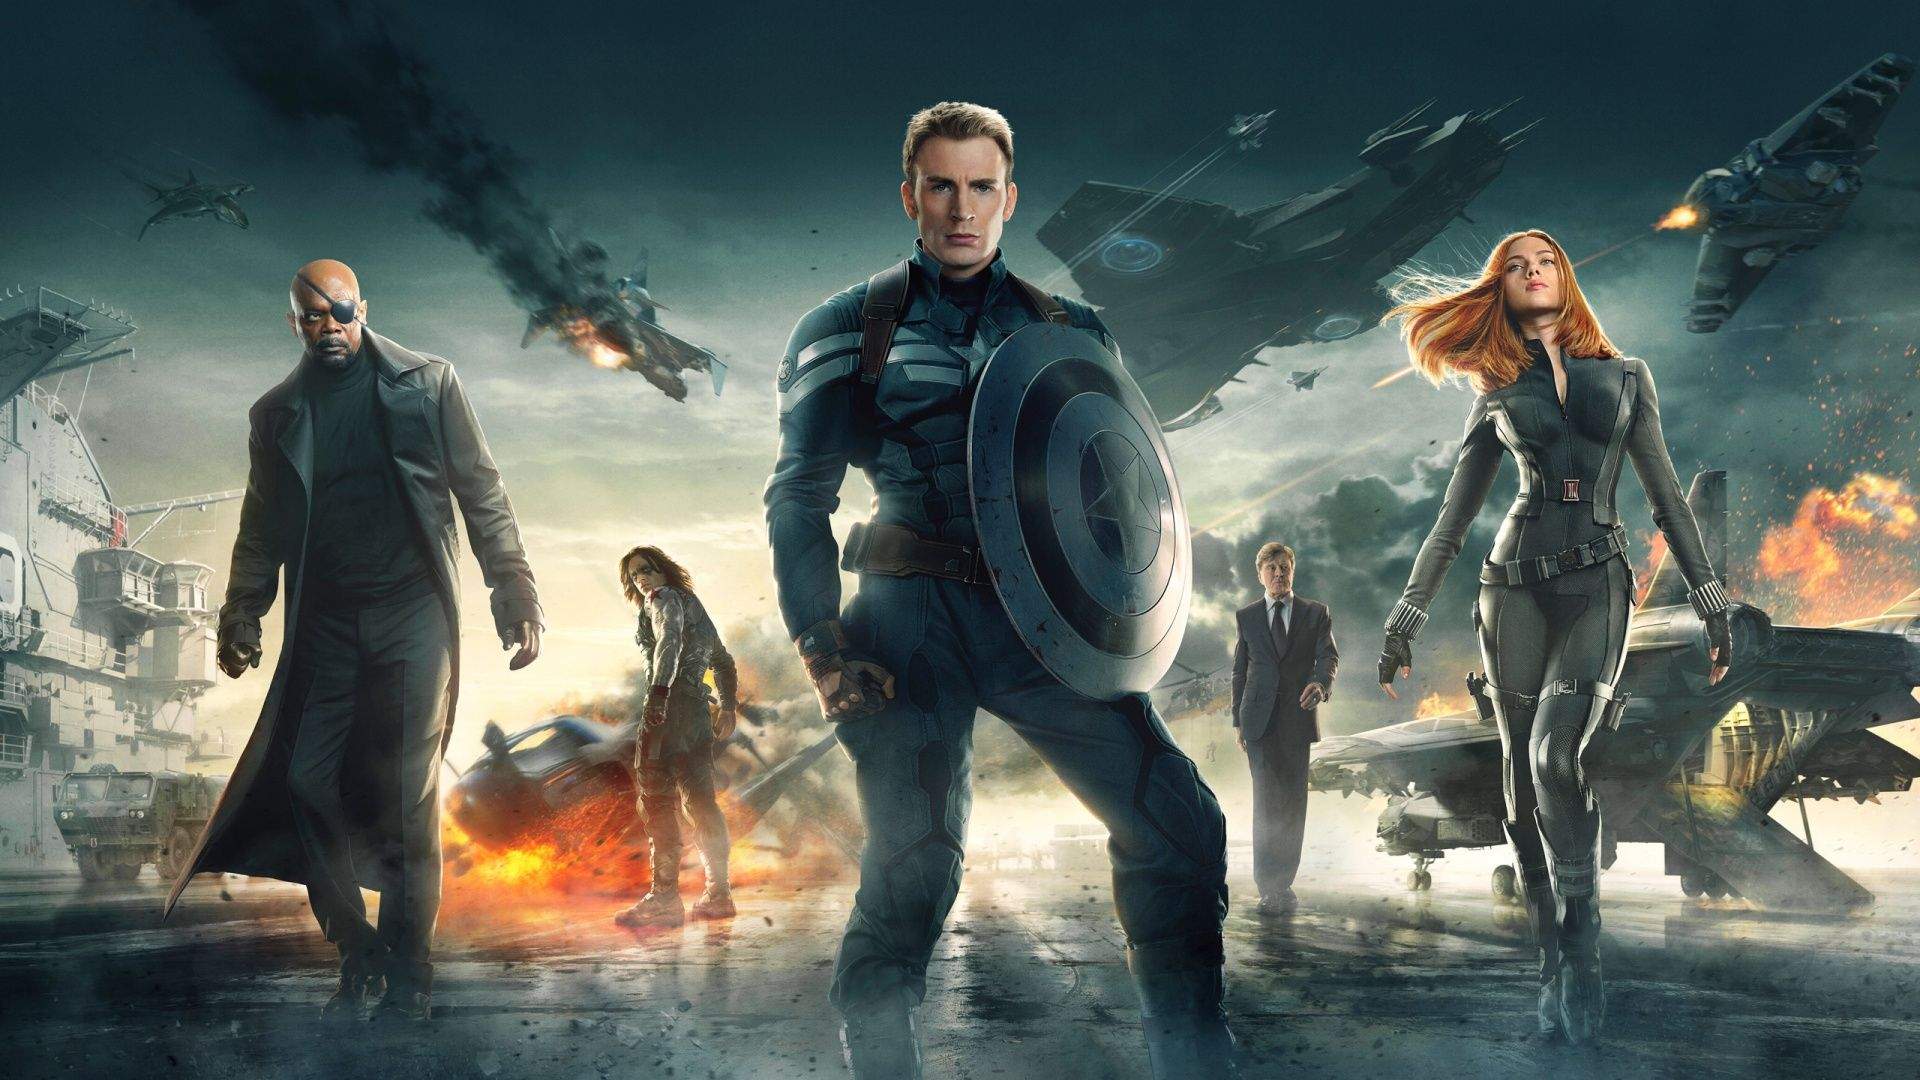 captain america hd images